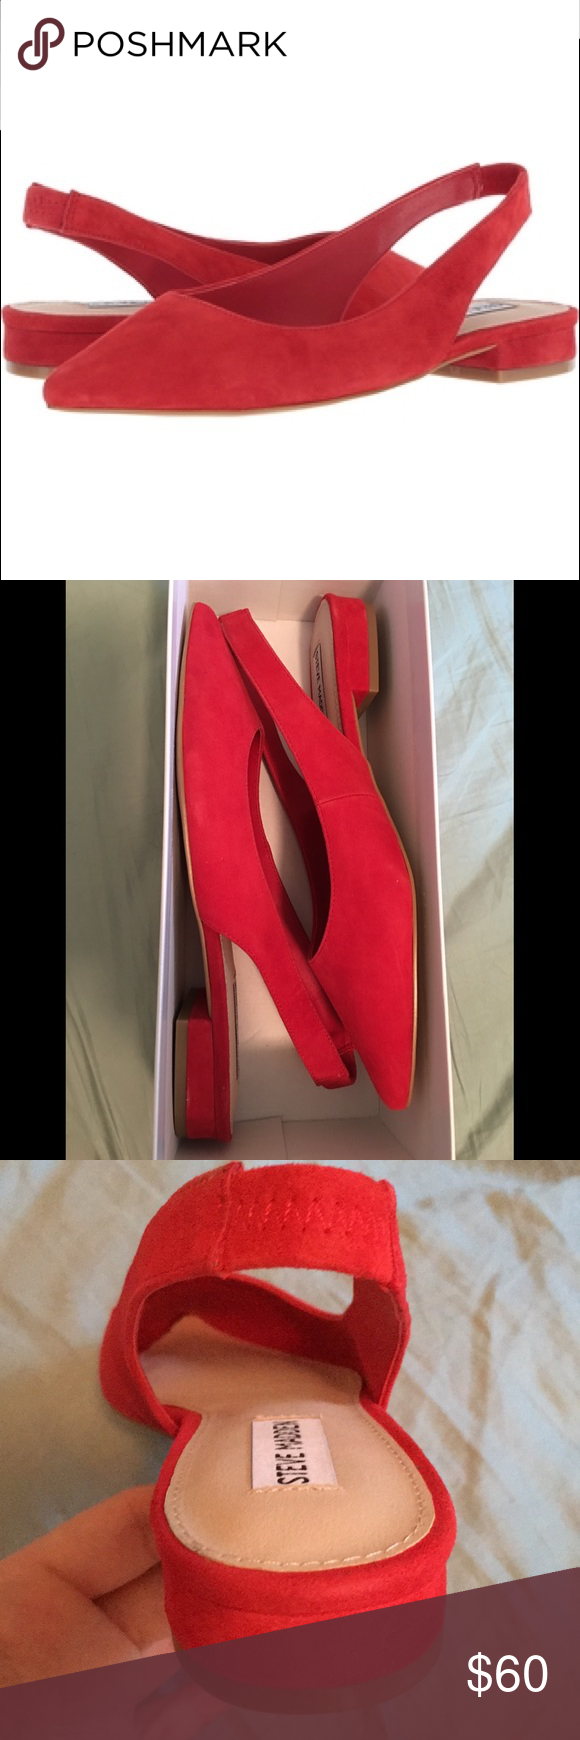 15008882453 👠 NWT Steve Madden Red Suede Envi Pumps 👠 Beautiful new in box red ...